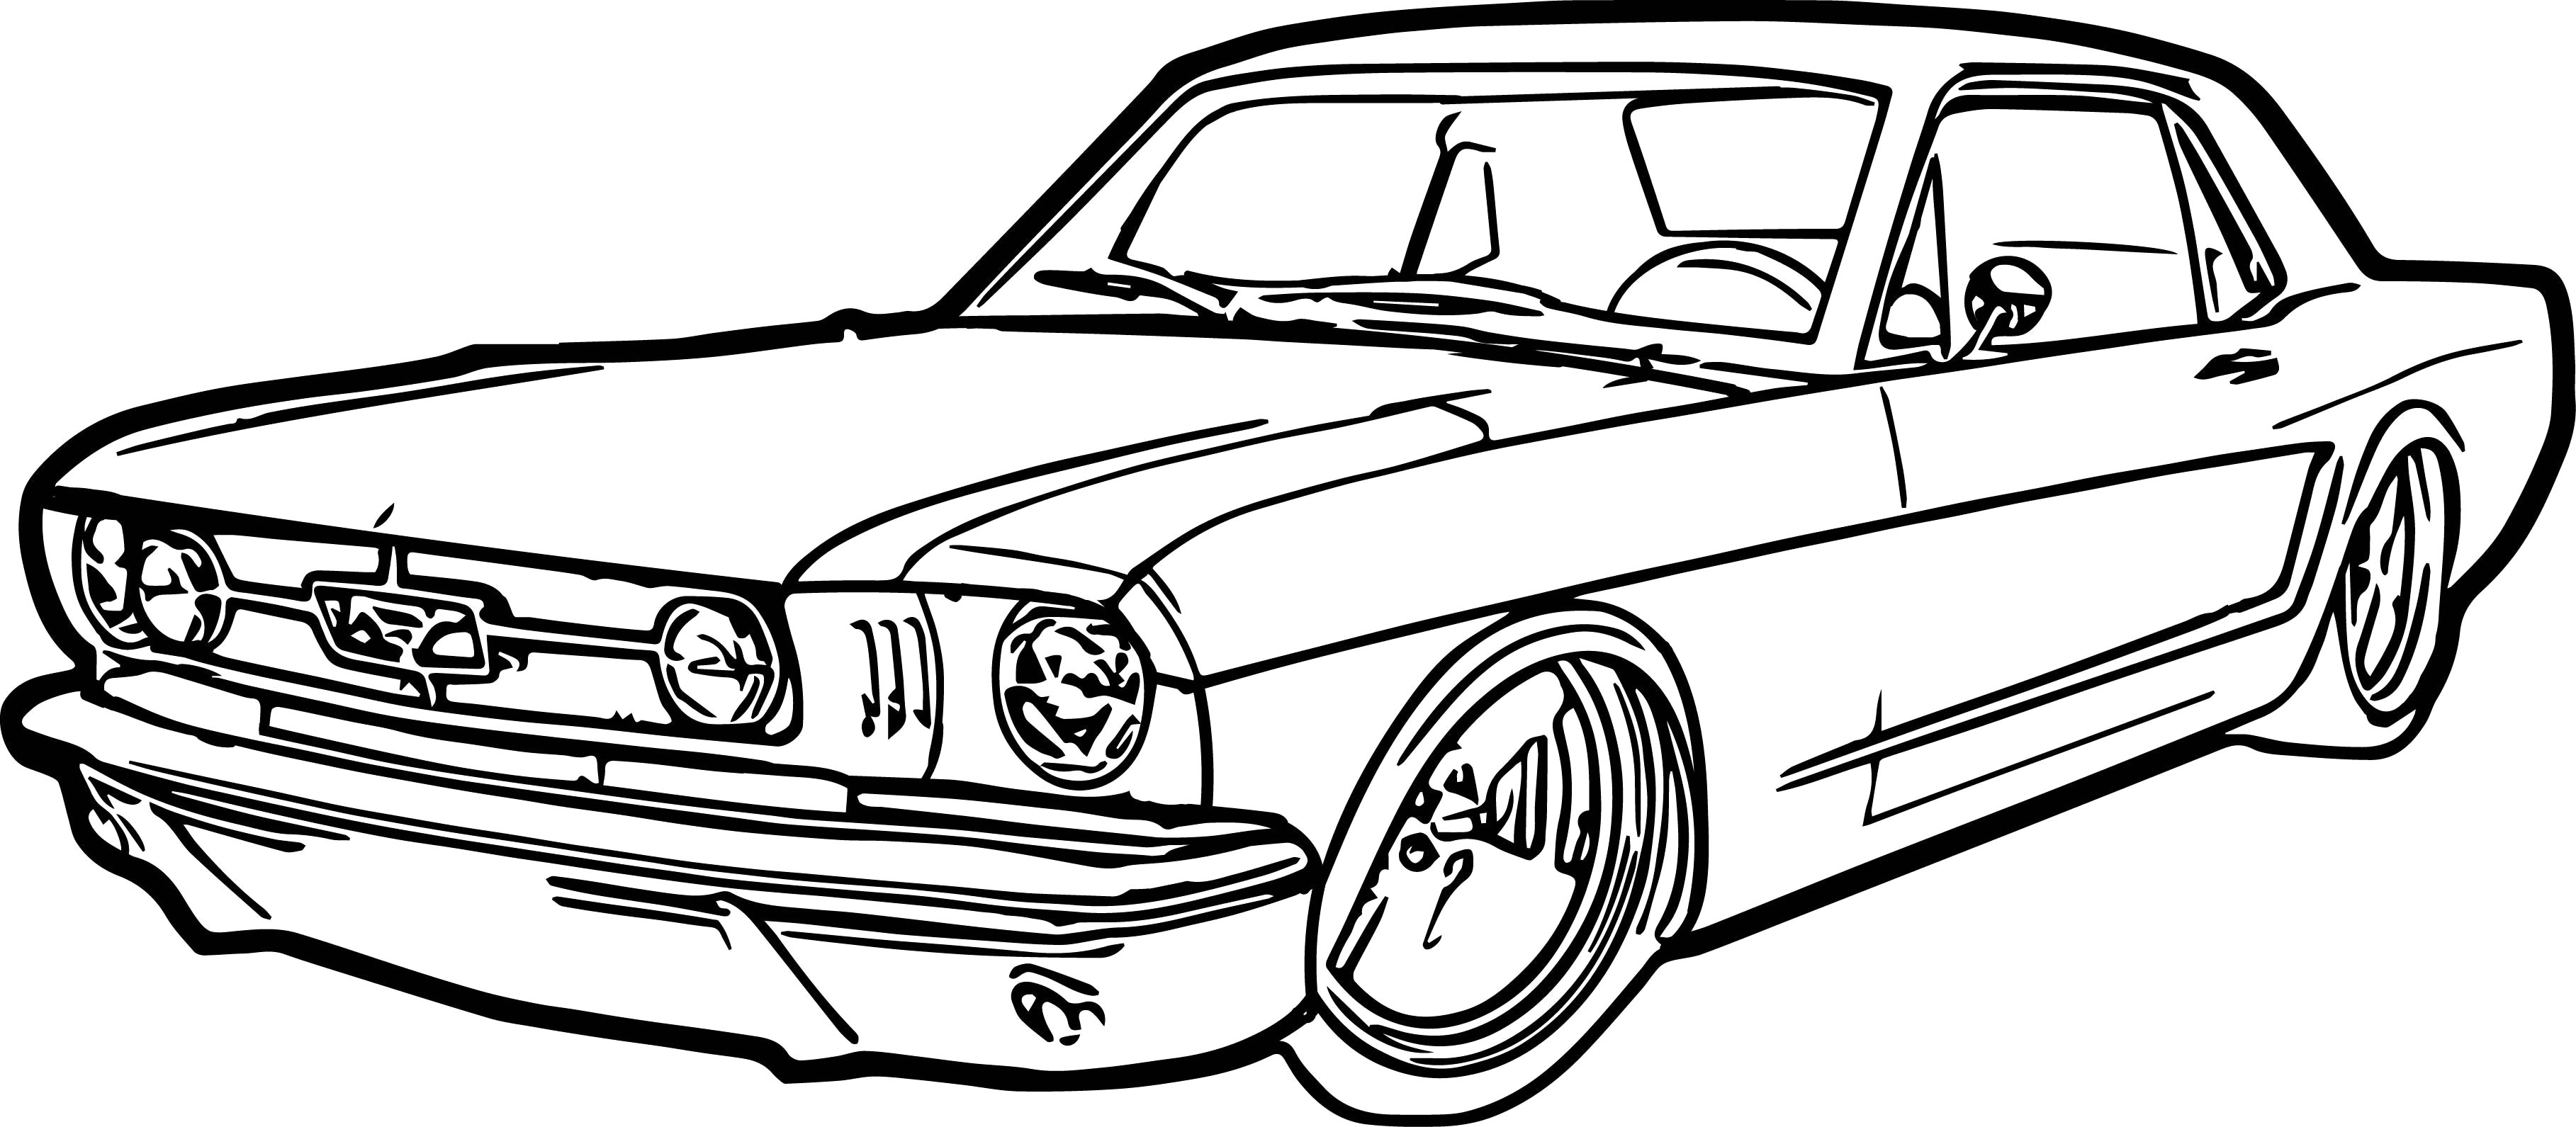 3635x1591 Race Car Coloring Pages Free